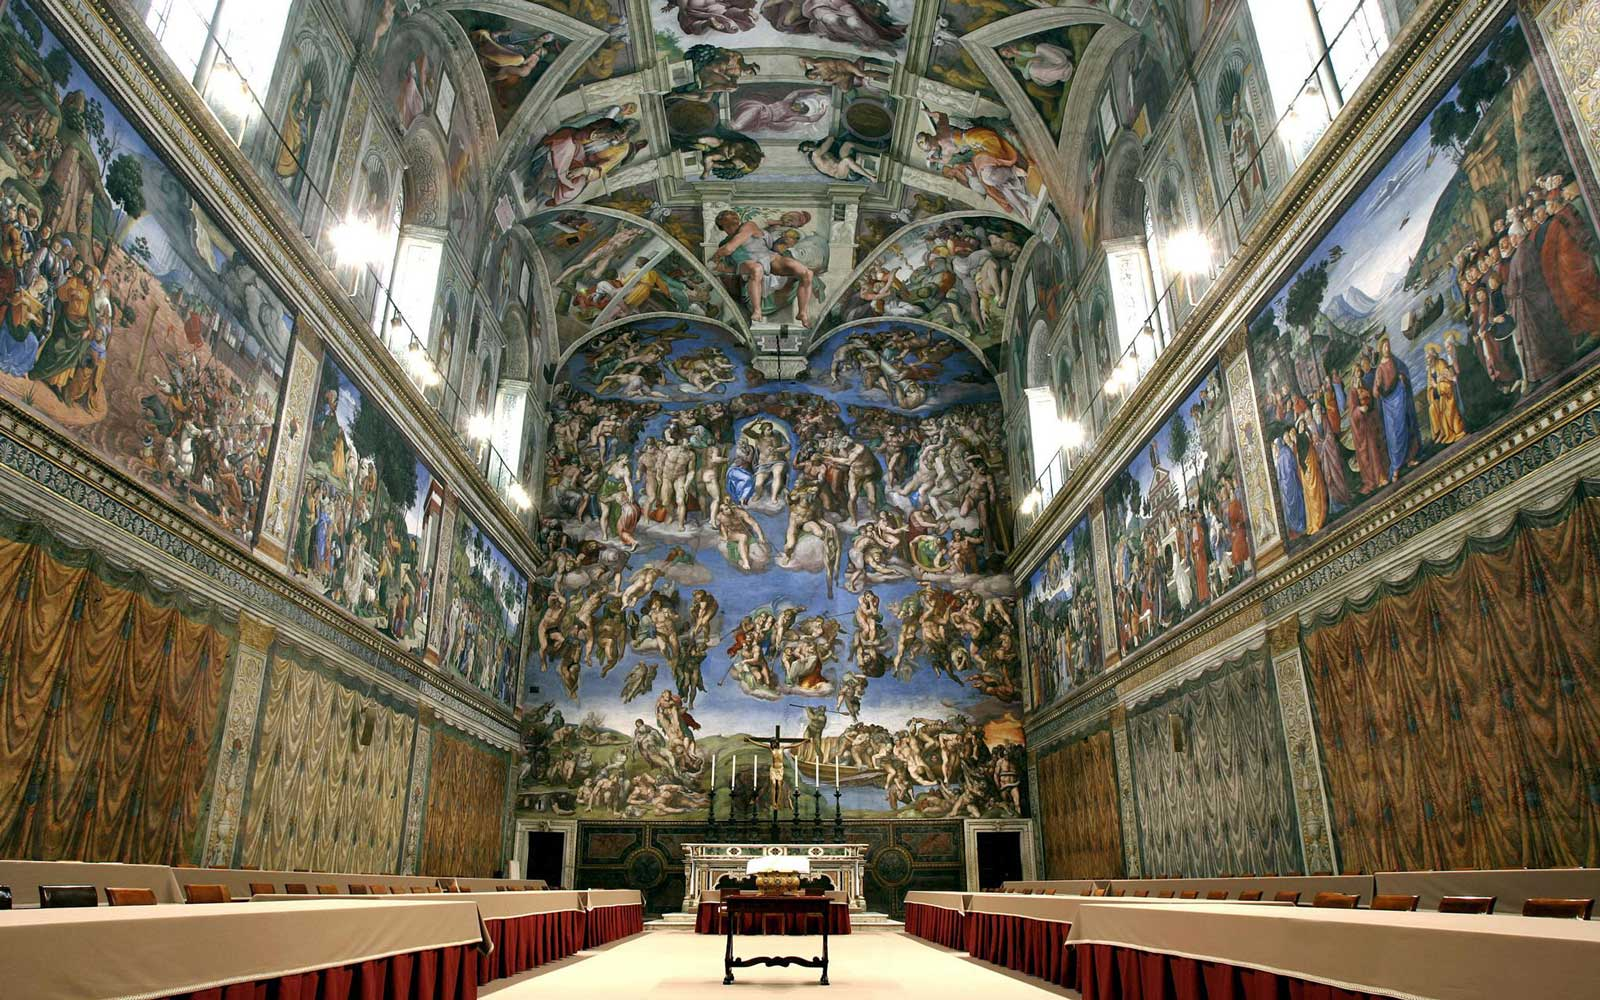 Sistine Chapel with Michelangelo's fresco